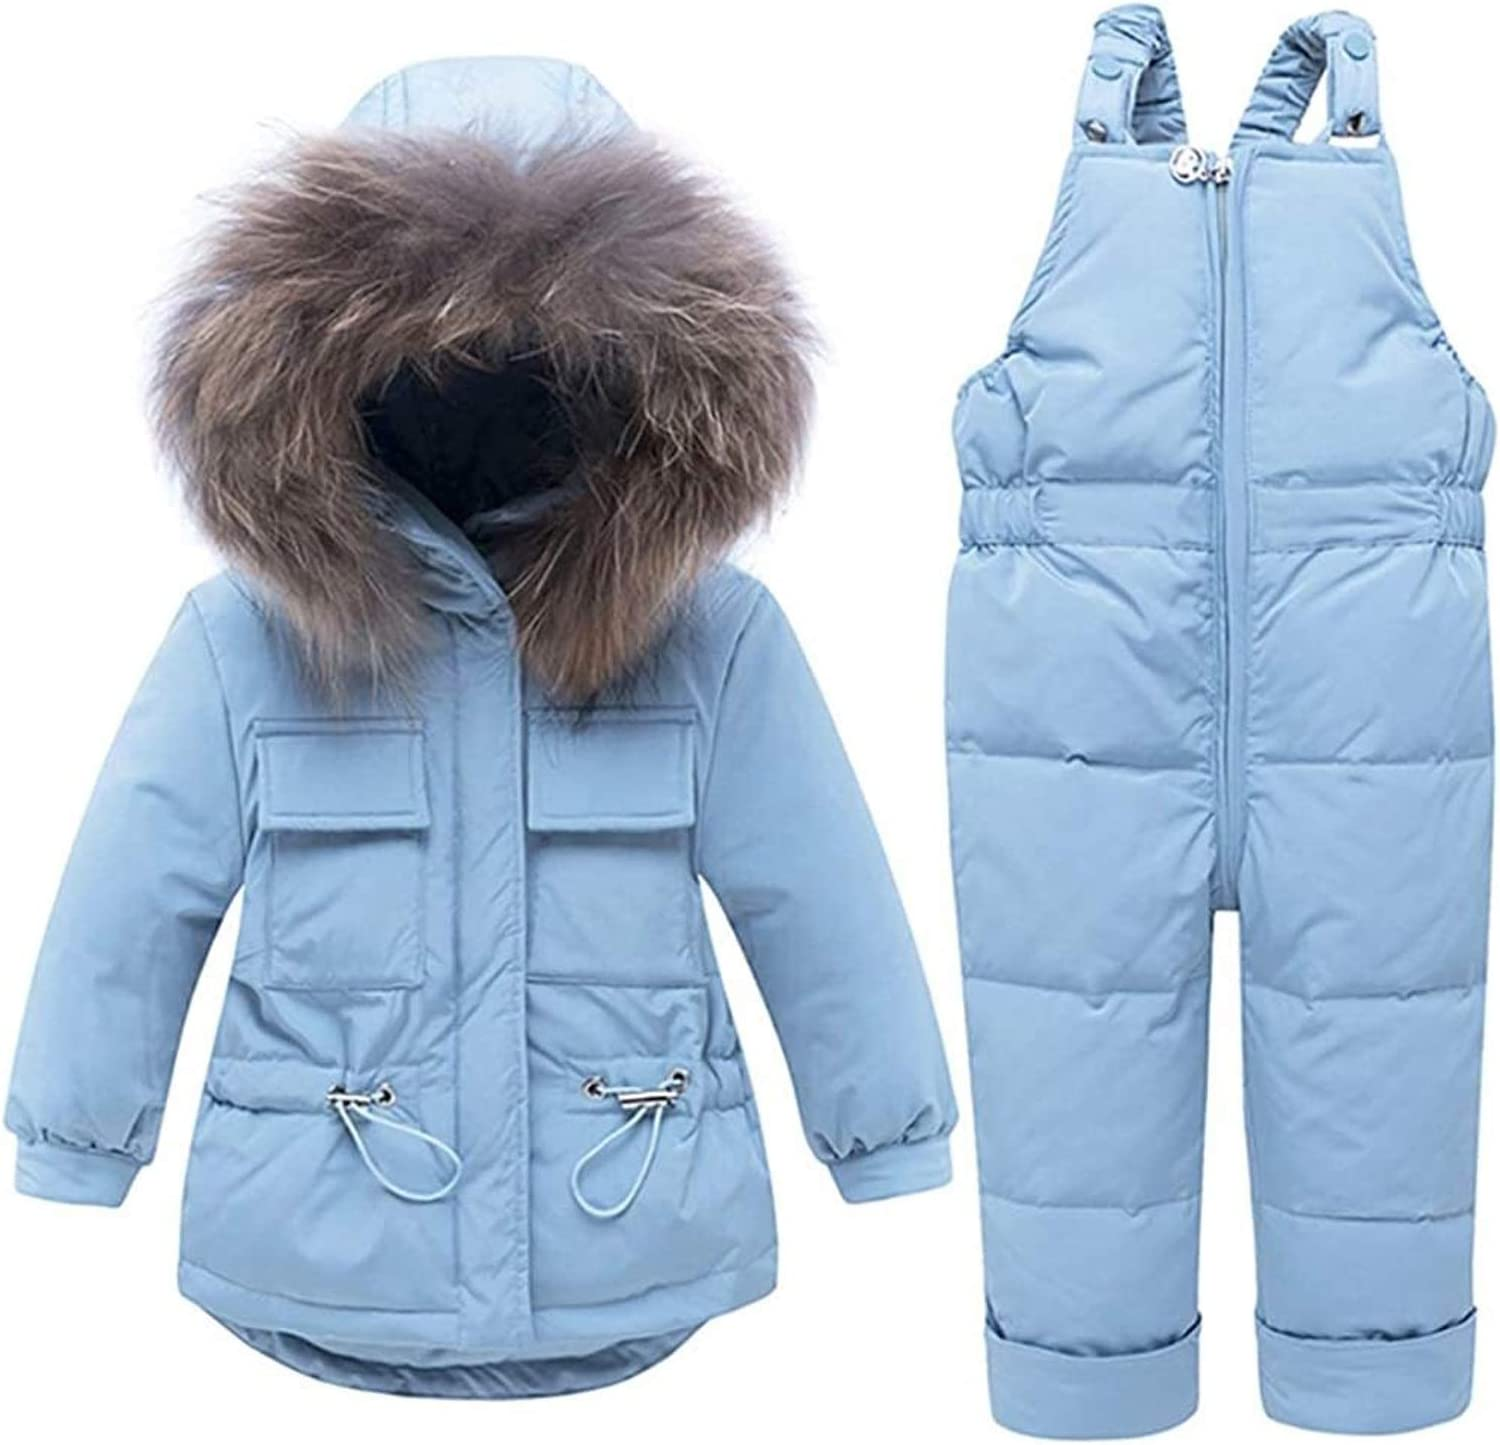 NYKK Baby Boys Girls Snowsuit Toddler Outfit Sets Winter Minneapolis Mall Max 81% OFF Ho Kids